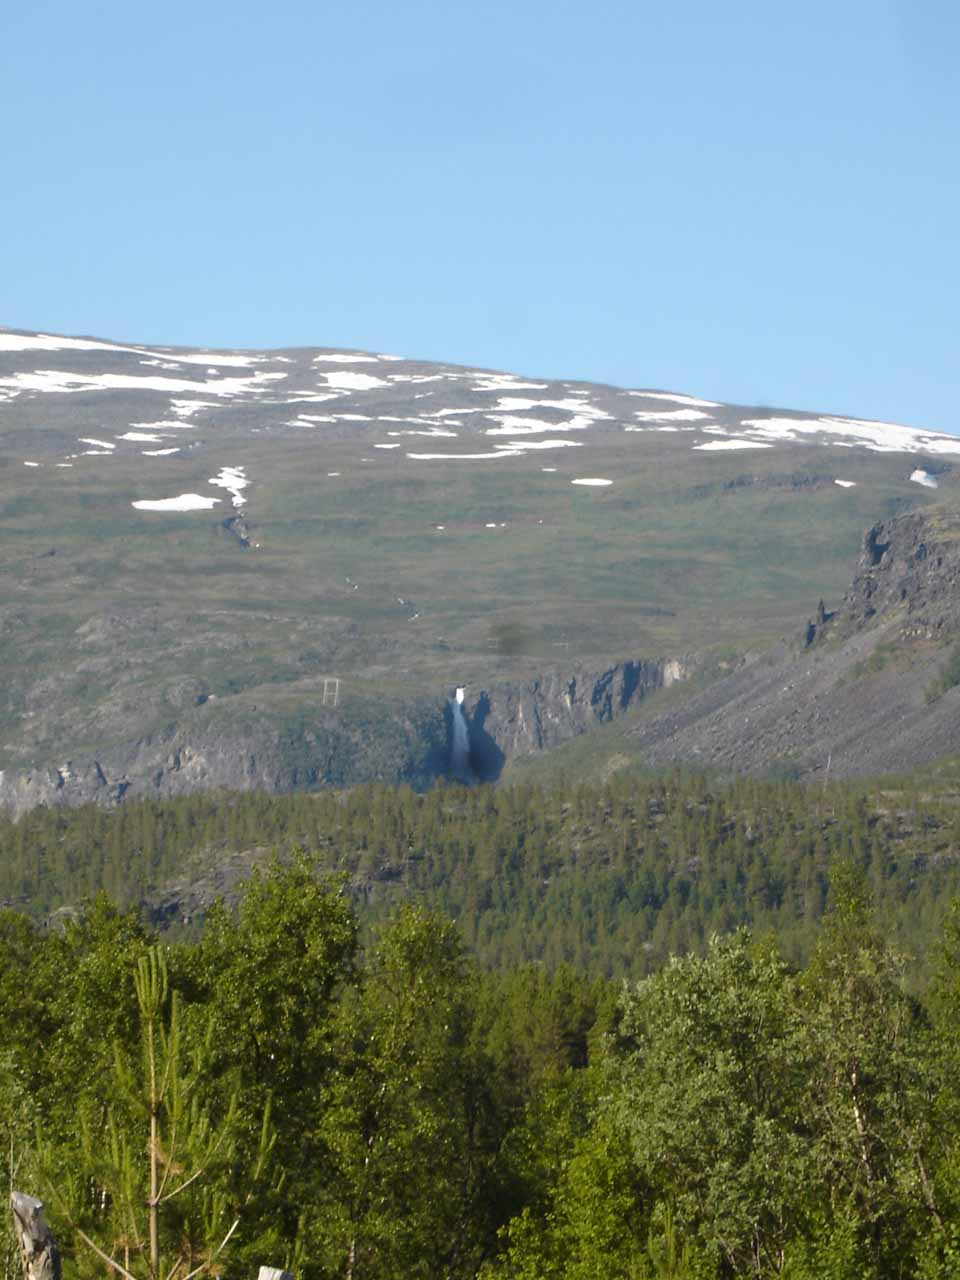 This distant but powerful waterfall was another giant that we noticed as we were driving north out of Reisadalen towards Storslett